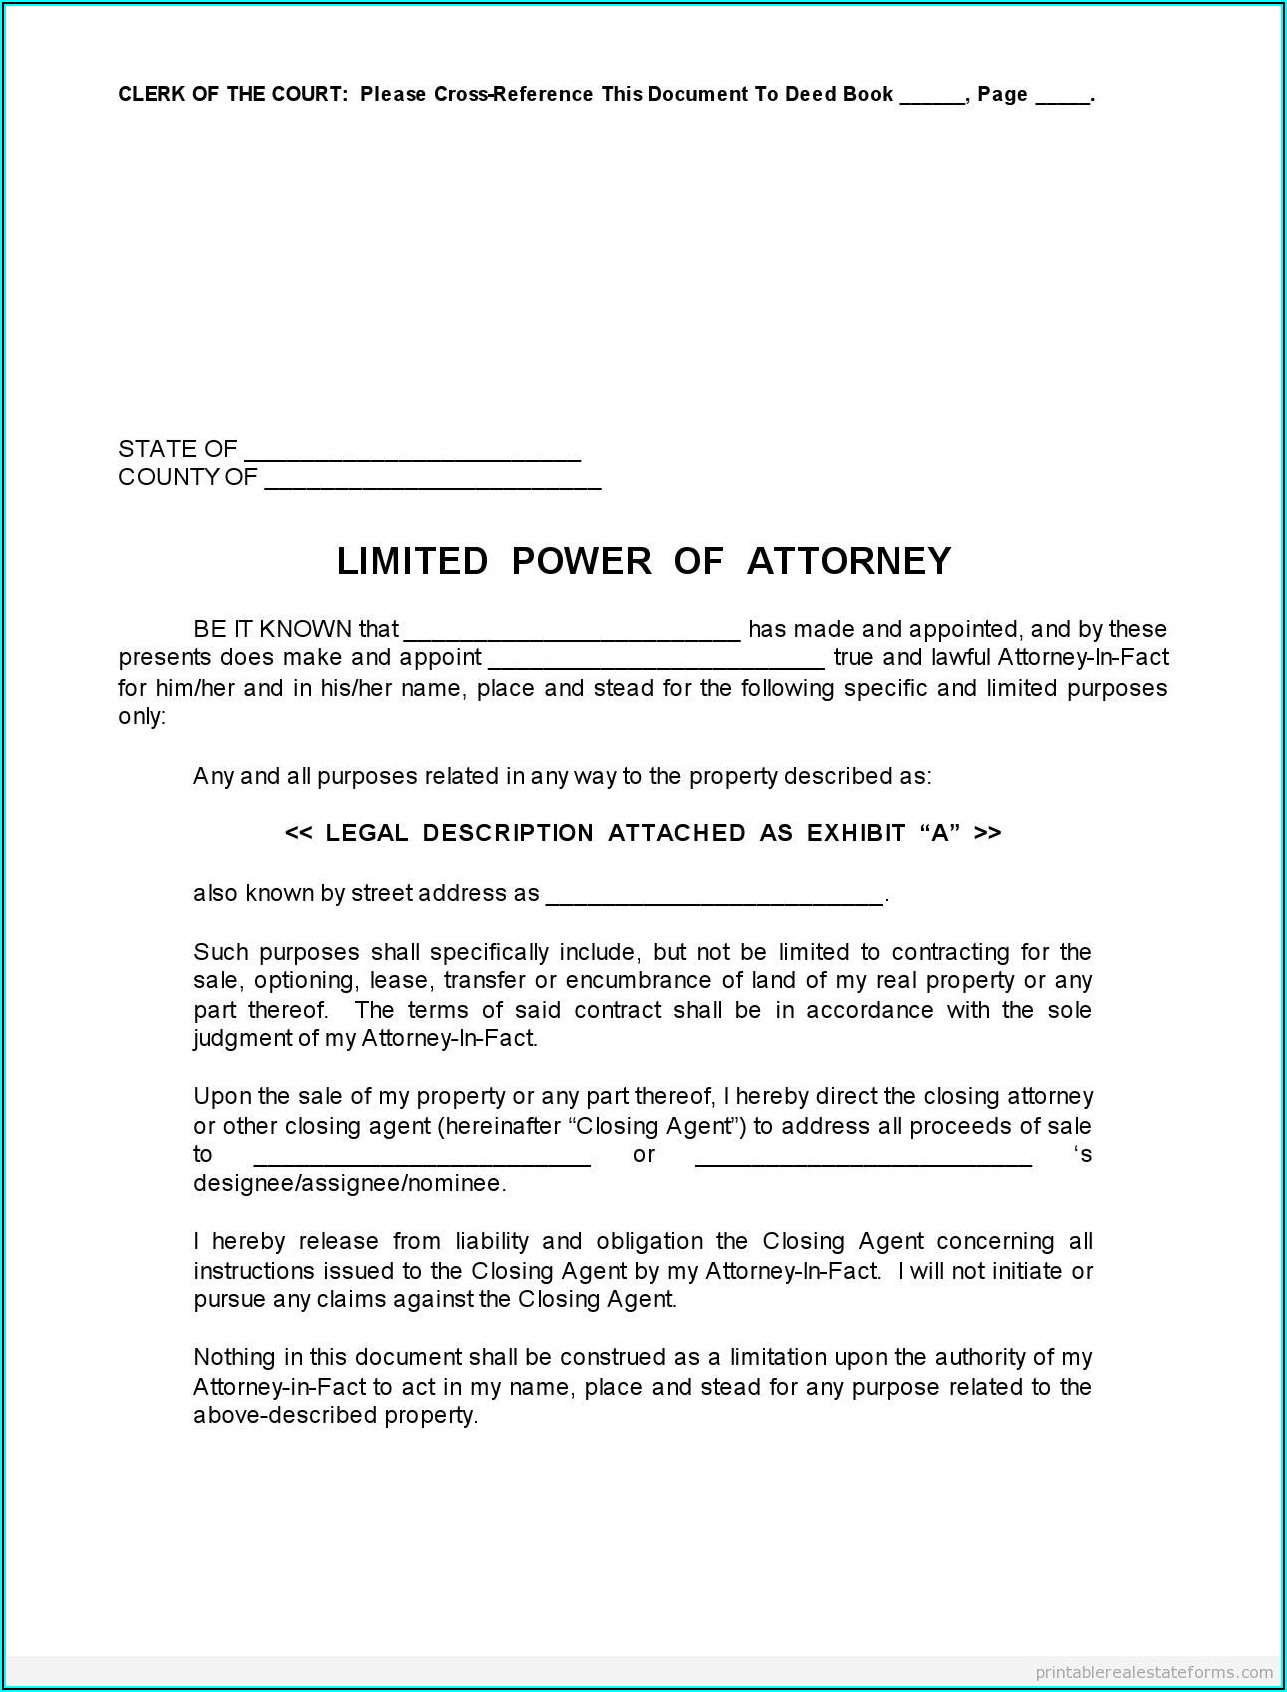 Full Power Of Attorney Template